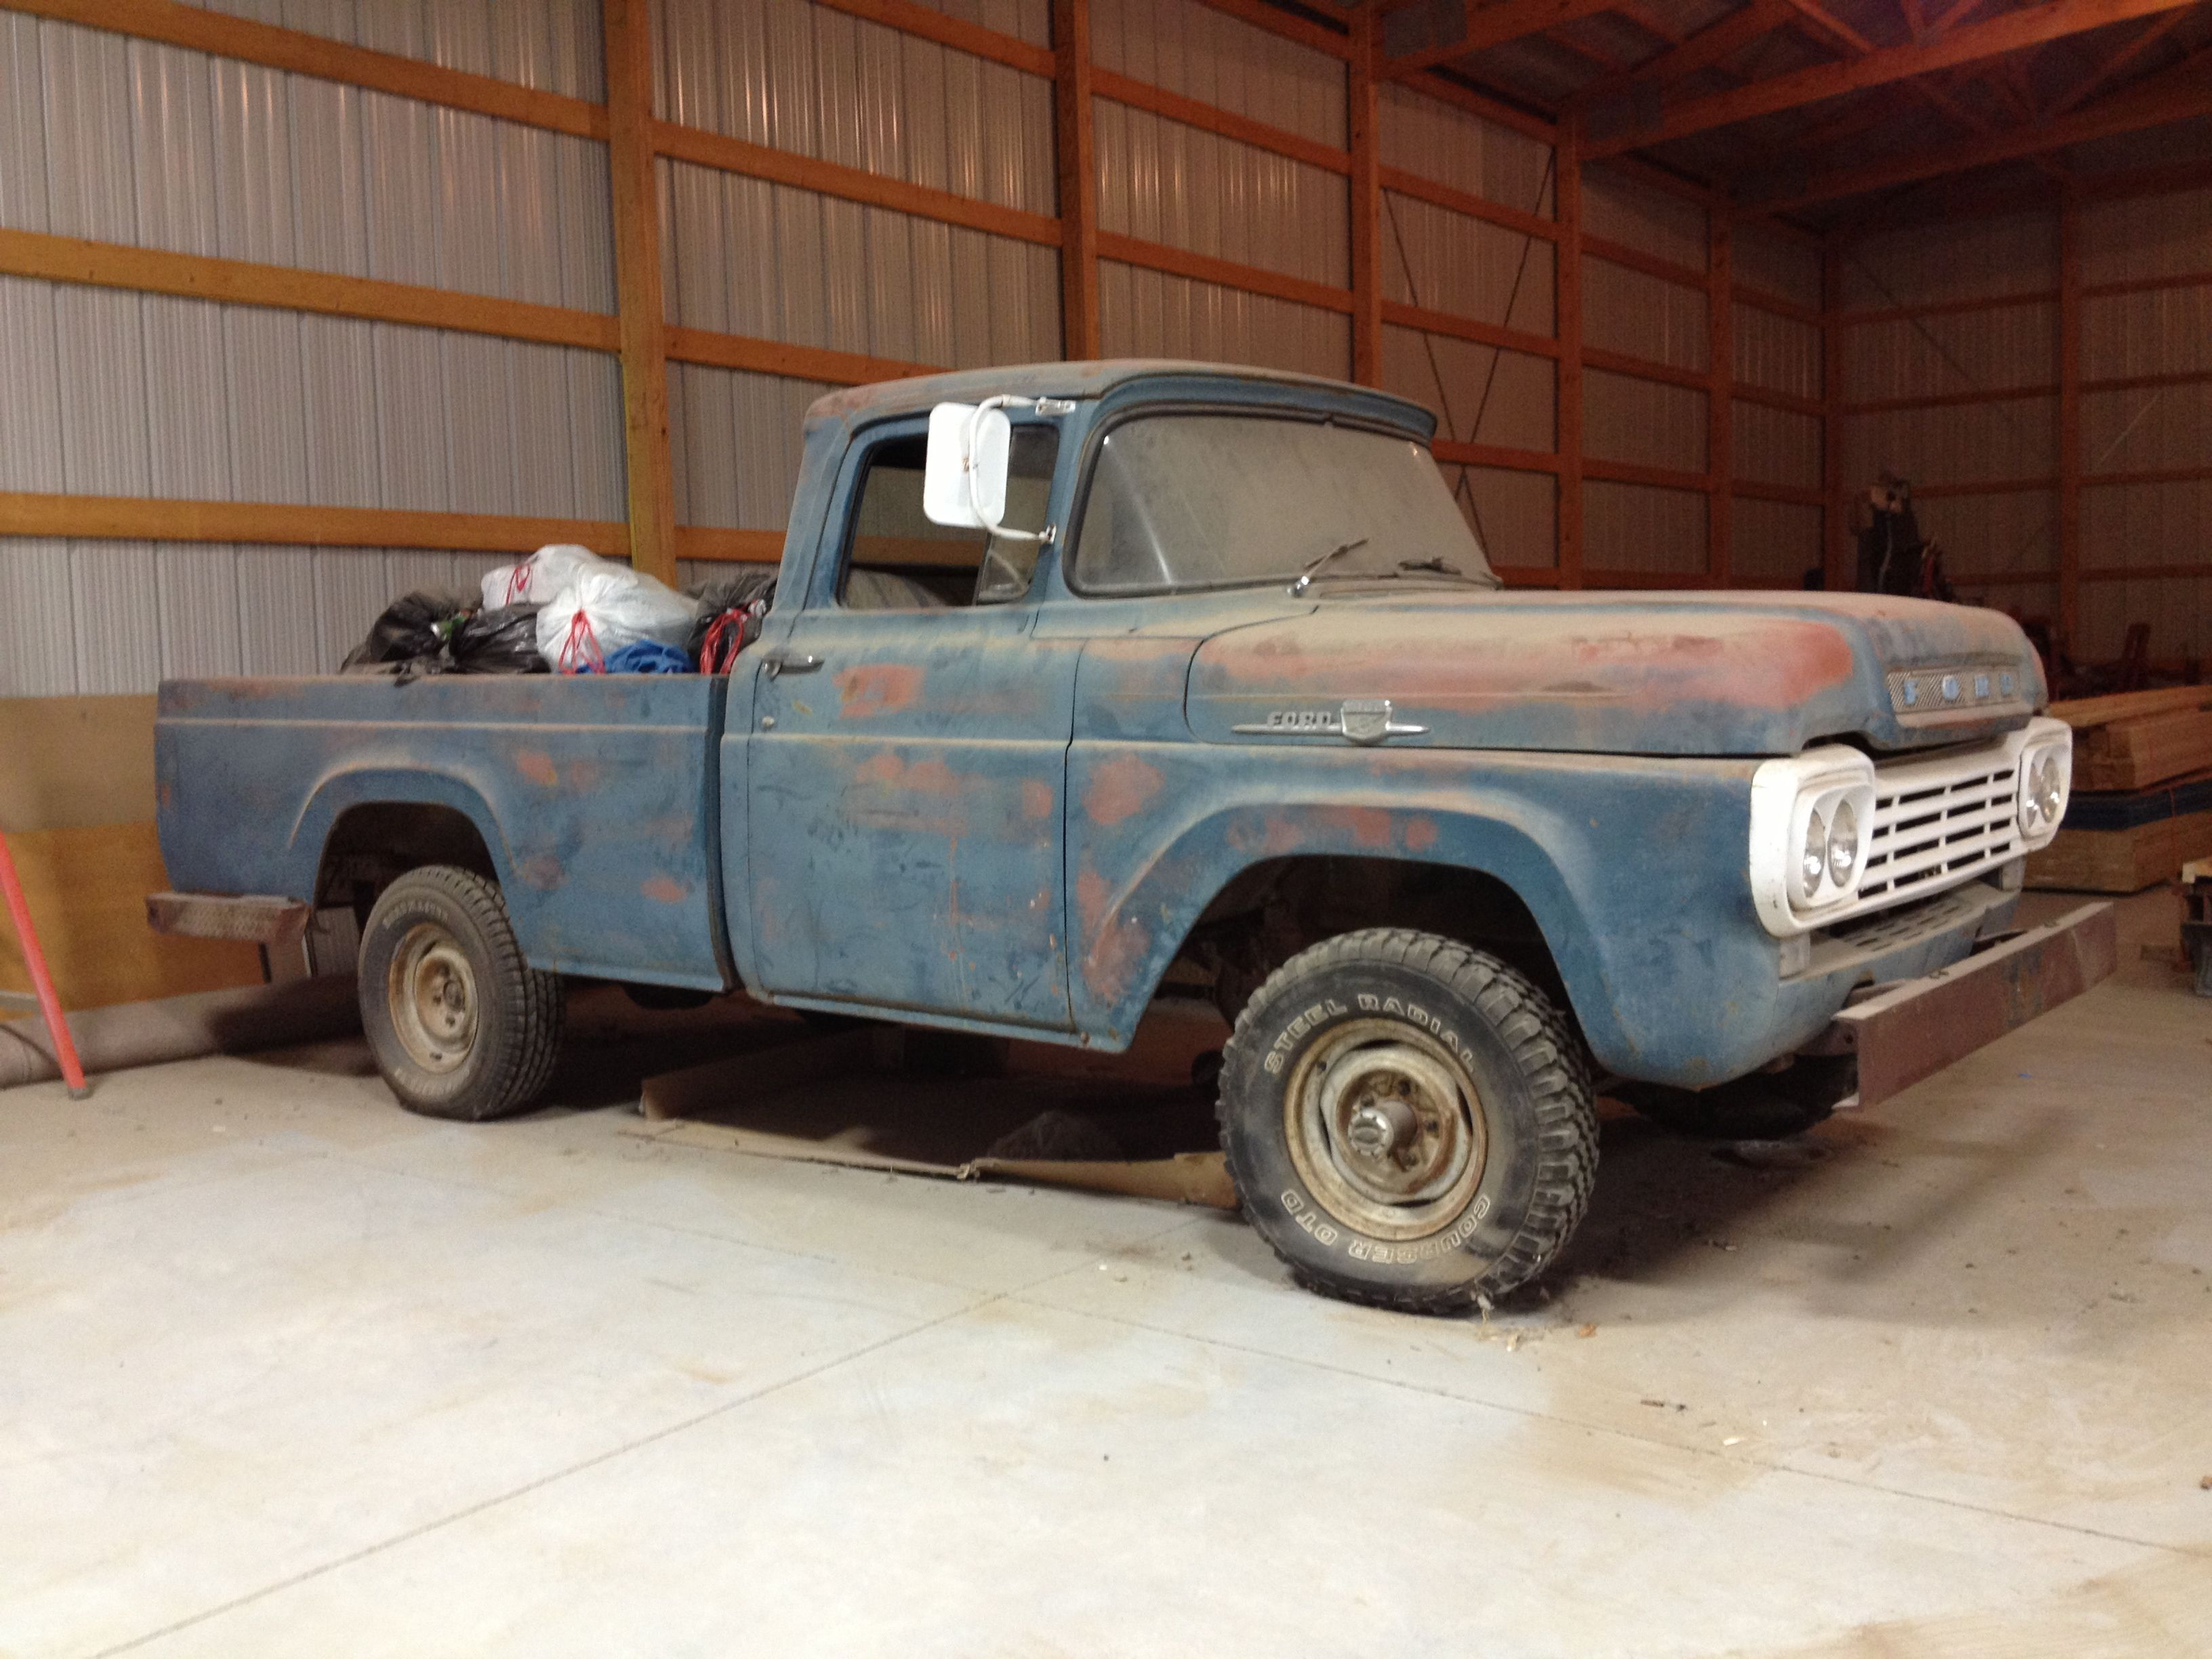 59 F100 4WD SOLD!!! | Cars and motorcyles | Pinterest